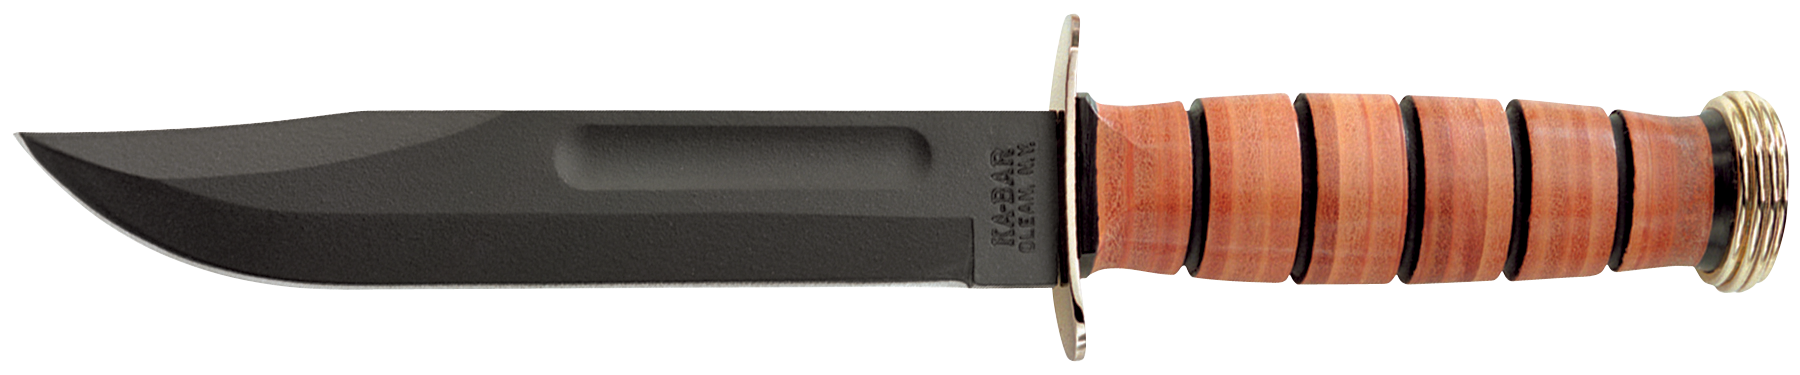 Ka-Bar 1215 USMC Knife 7